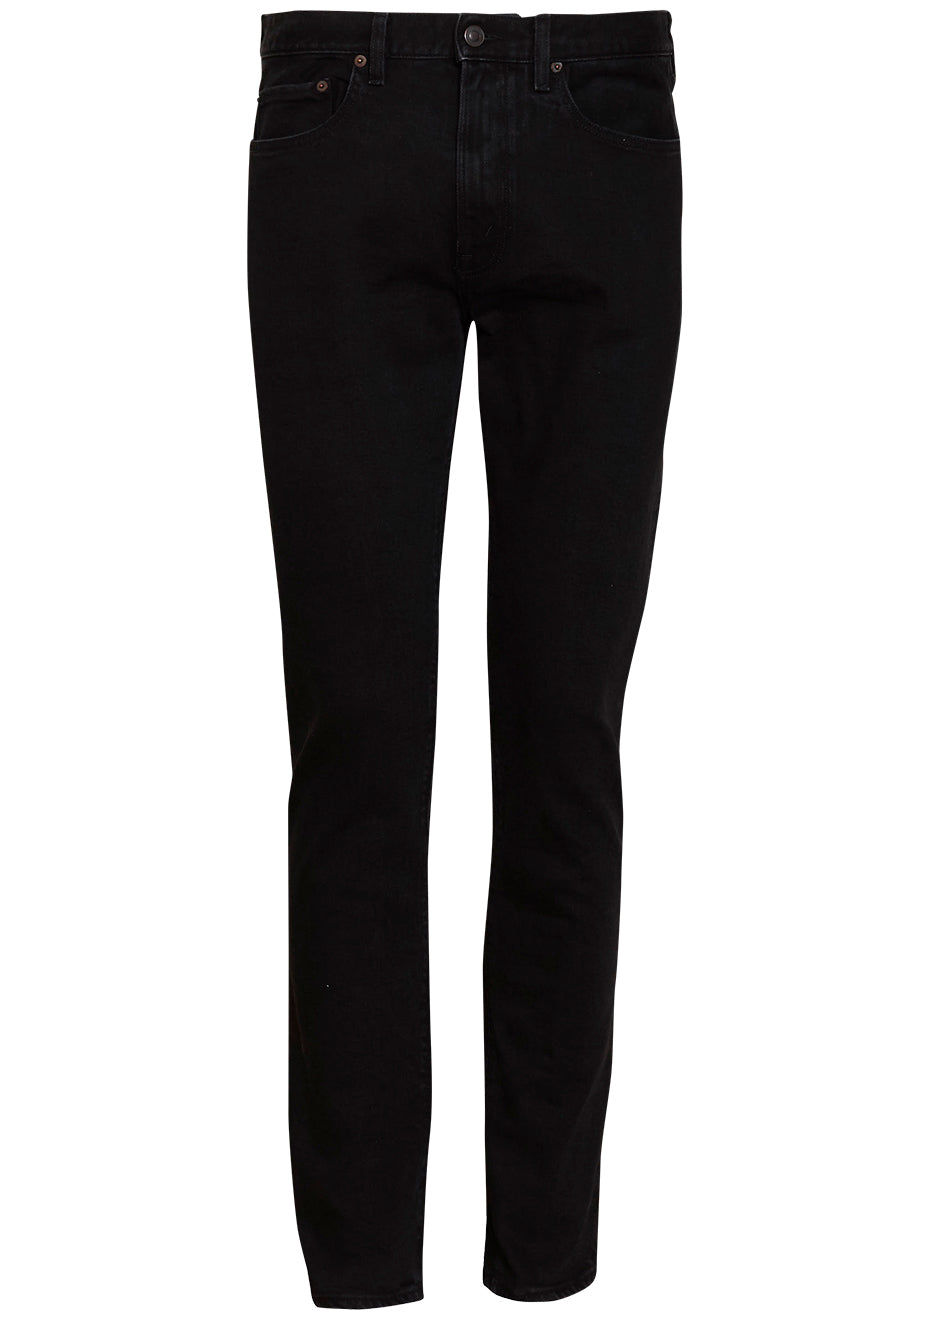 TM005 Black 2 Weeks Tapered Jeans